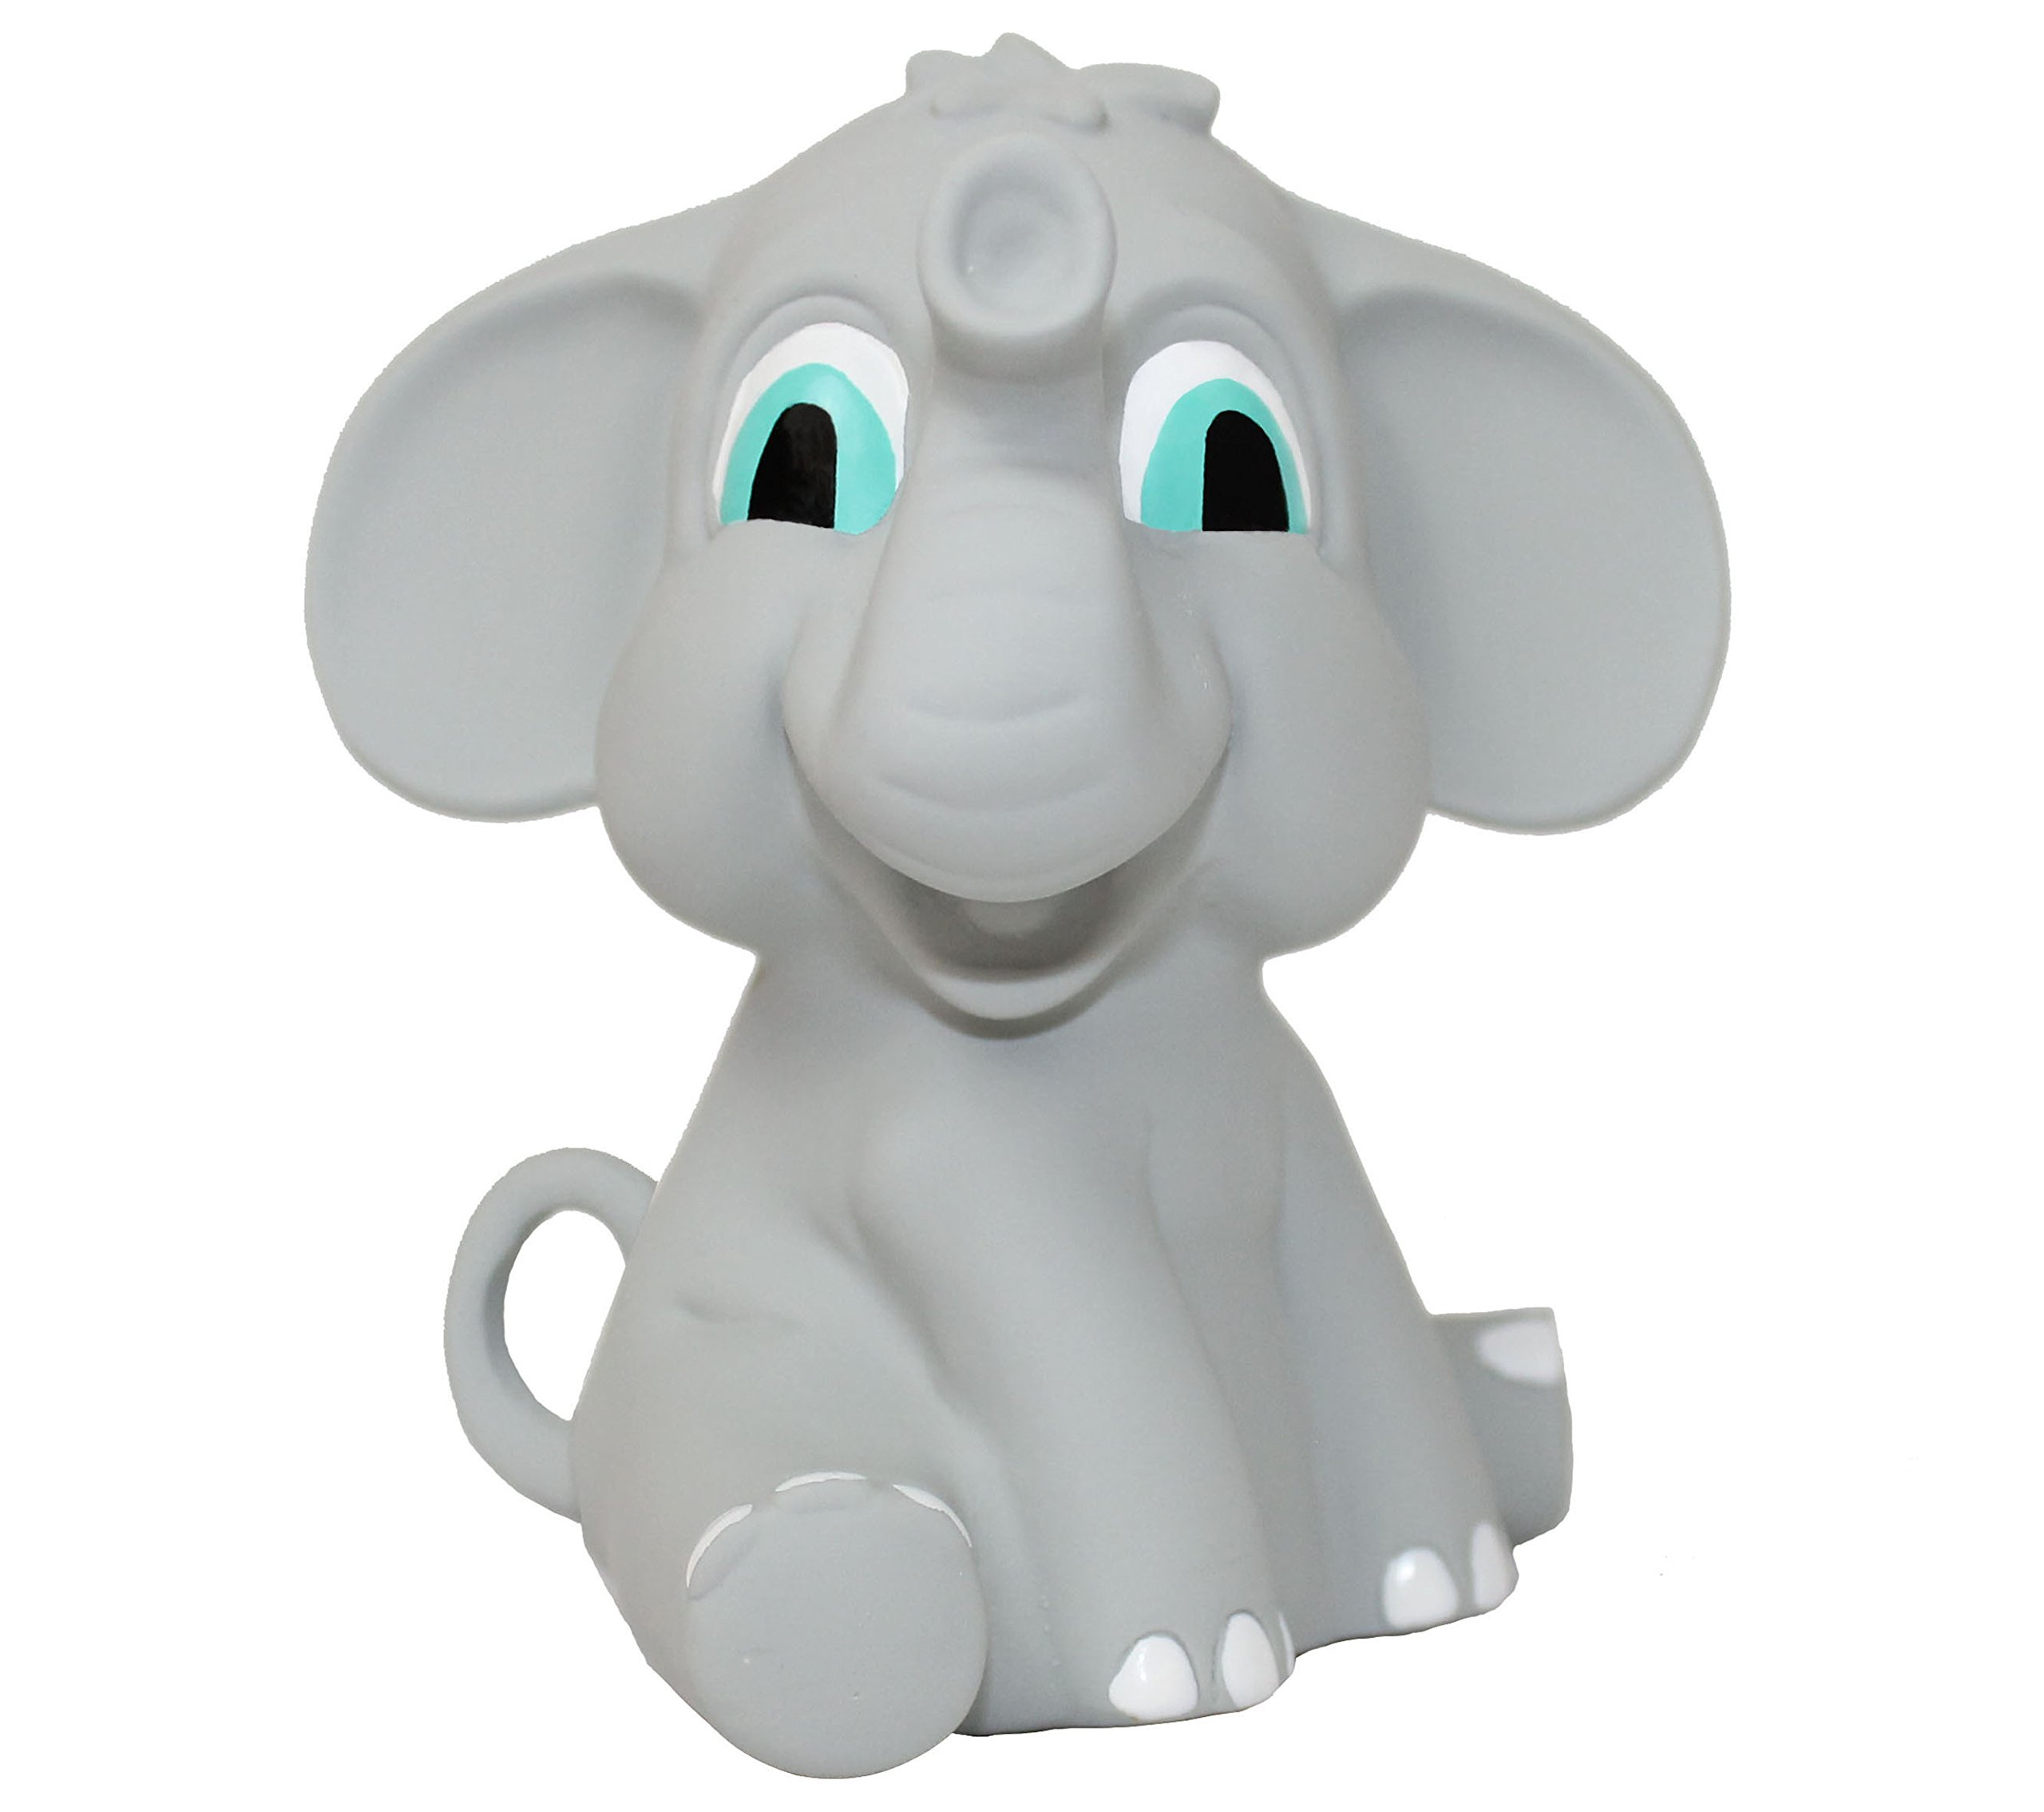 Logan the Elephant - All Natural Teething Toy for Babies